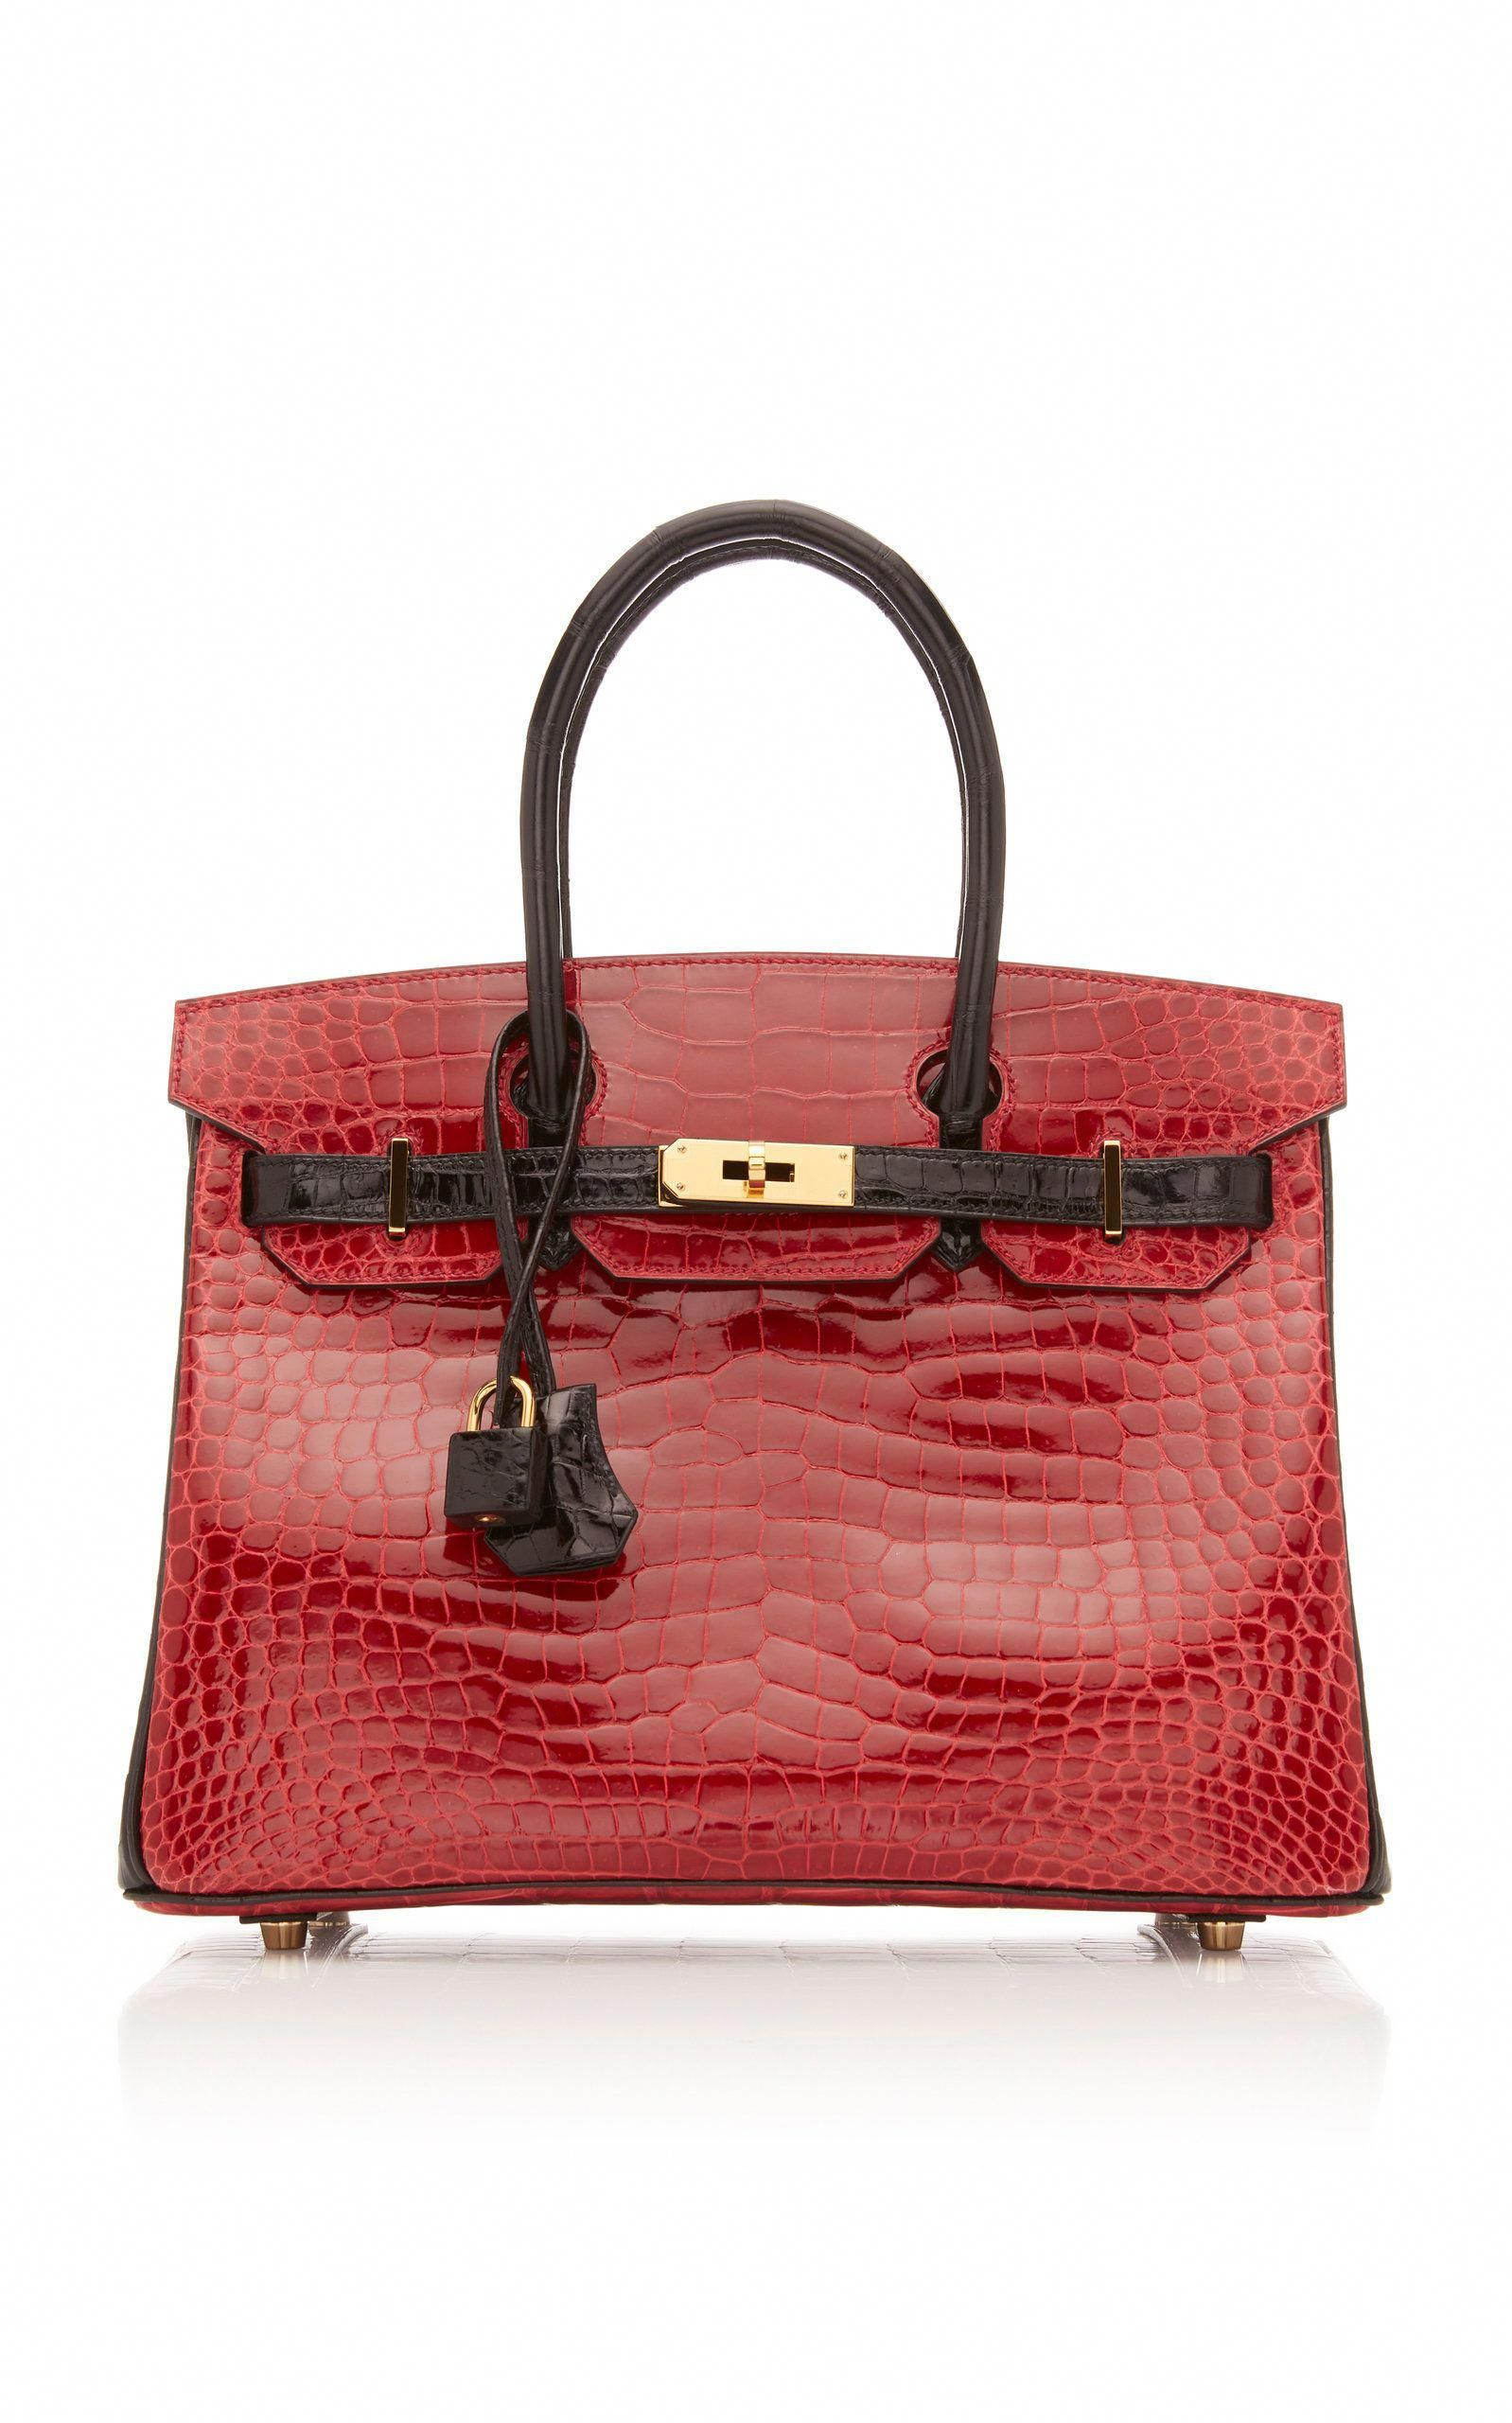 0d0a5389bff Hermes 30cm Shiny Briase and Black Porosus Crocodile Special Order  Horseshoe Birkin by HERMES VINTAGE for